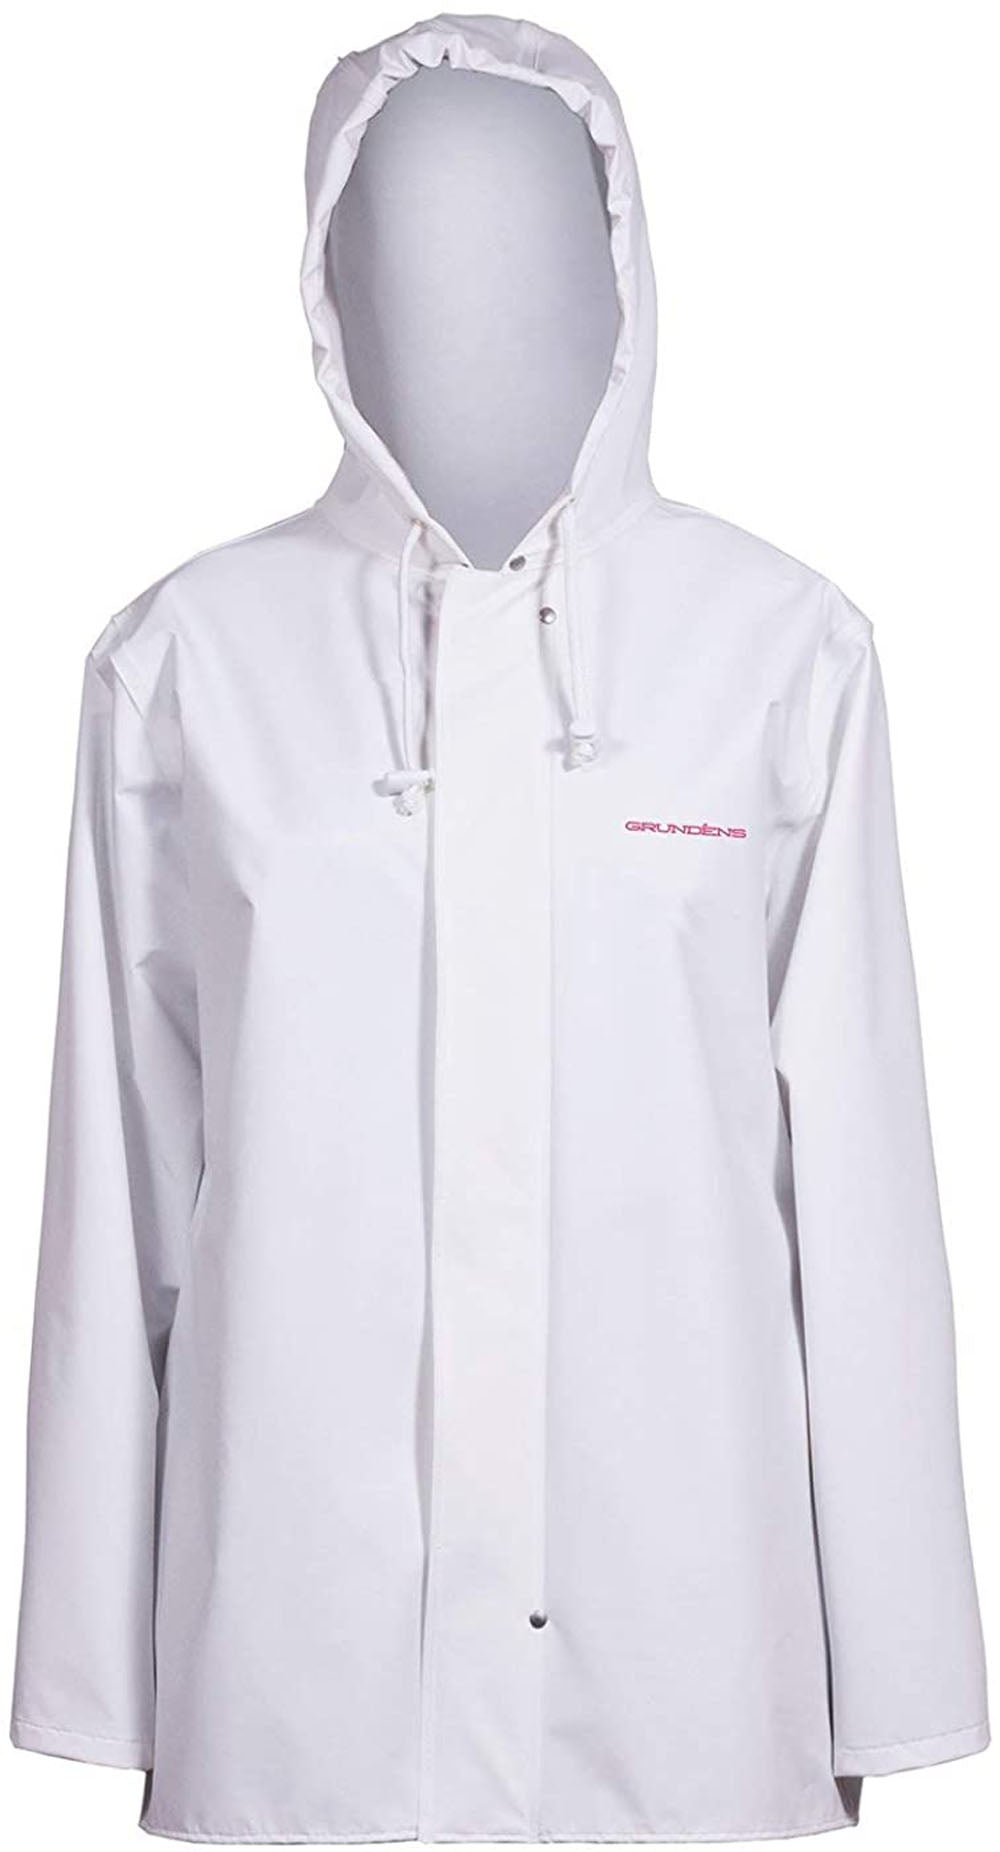 Women's Petrus Jacket in White color from the front view